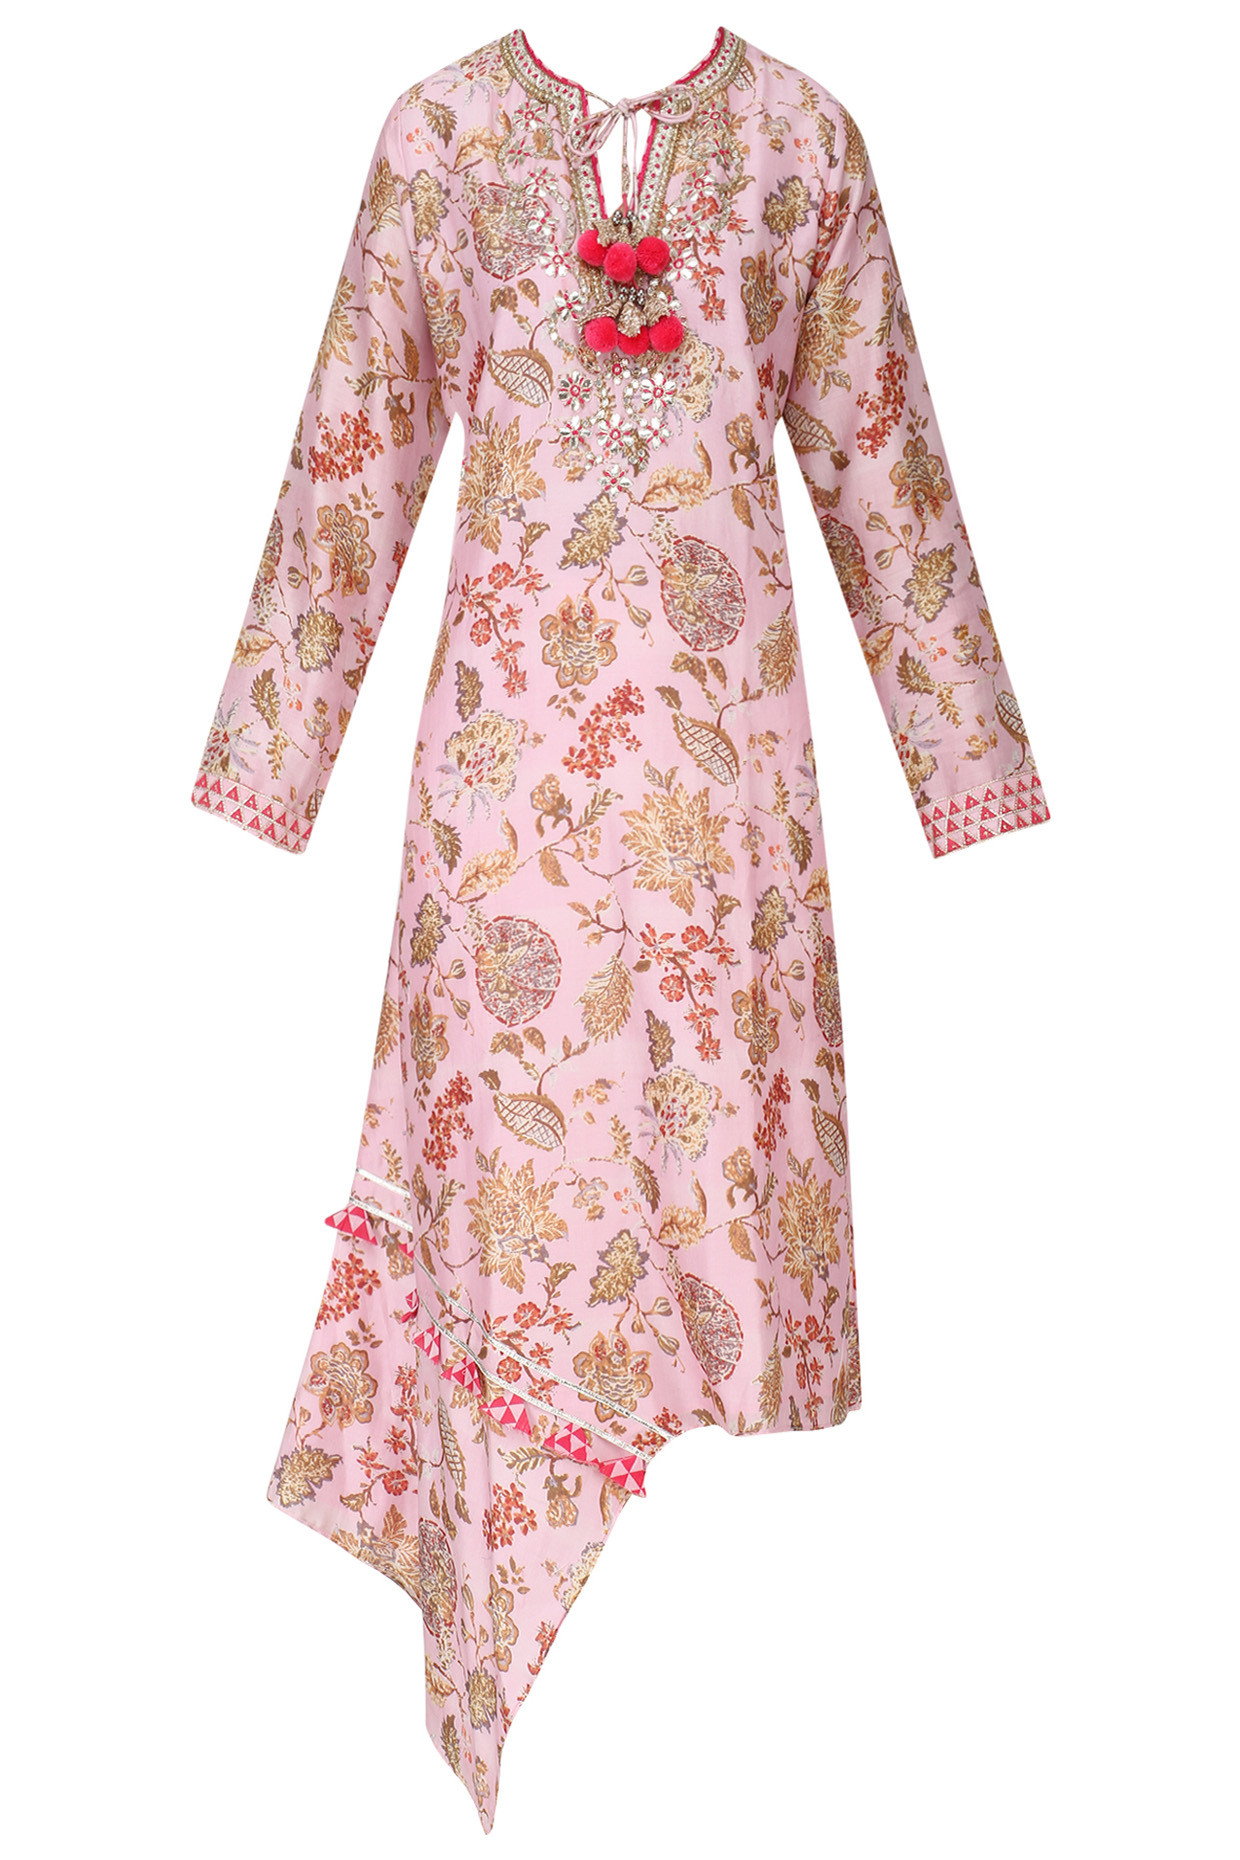 Rose Pink Floral Print Embroidered Kurta by Gopi Vaid